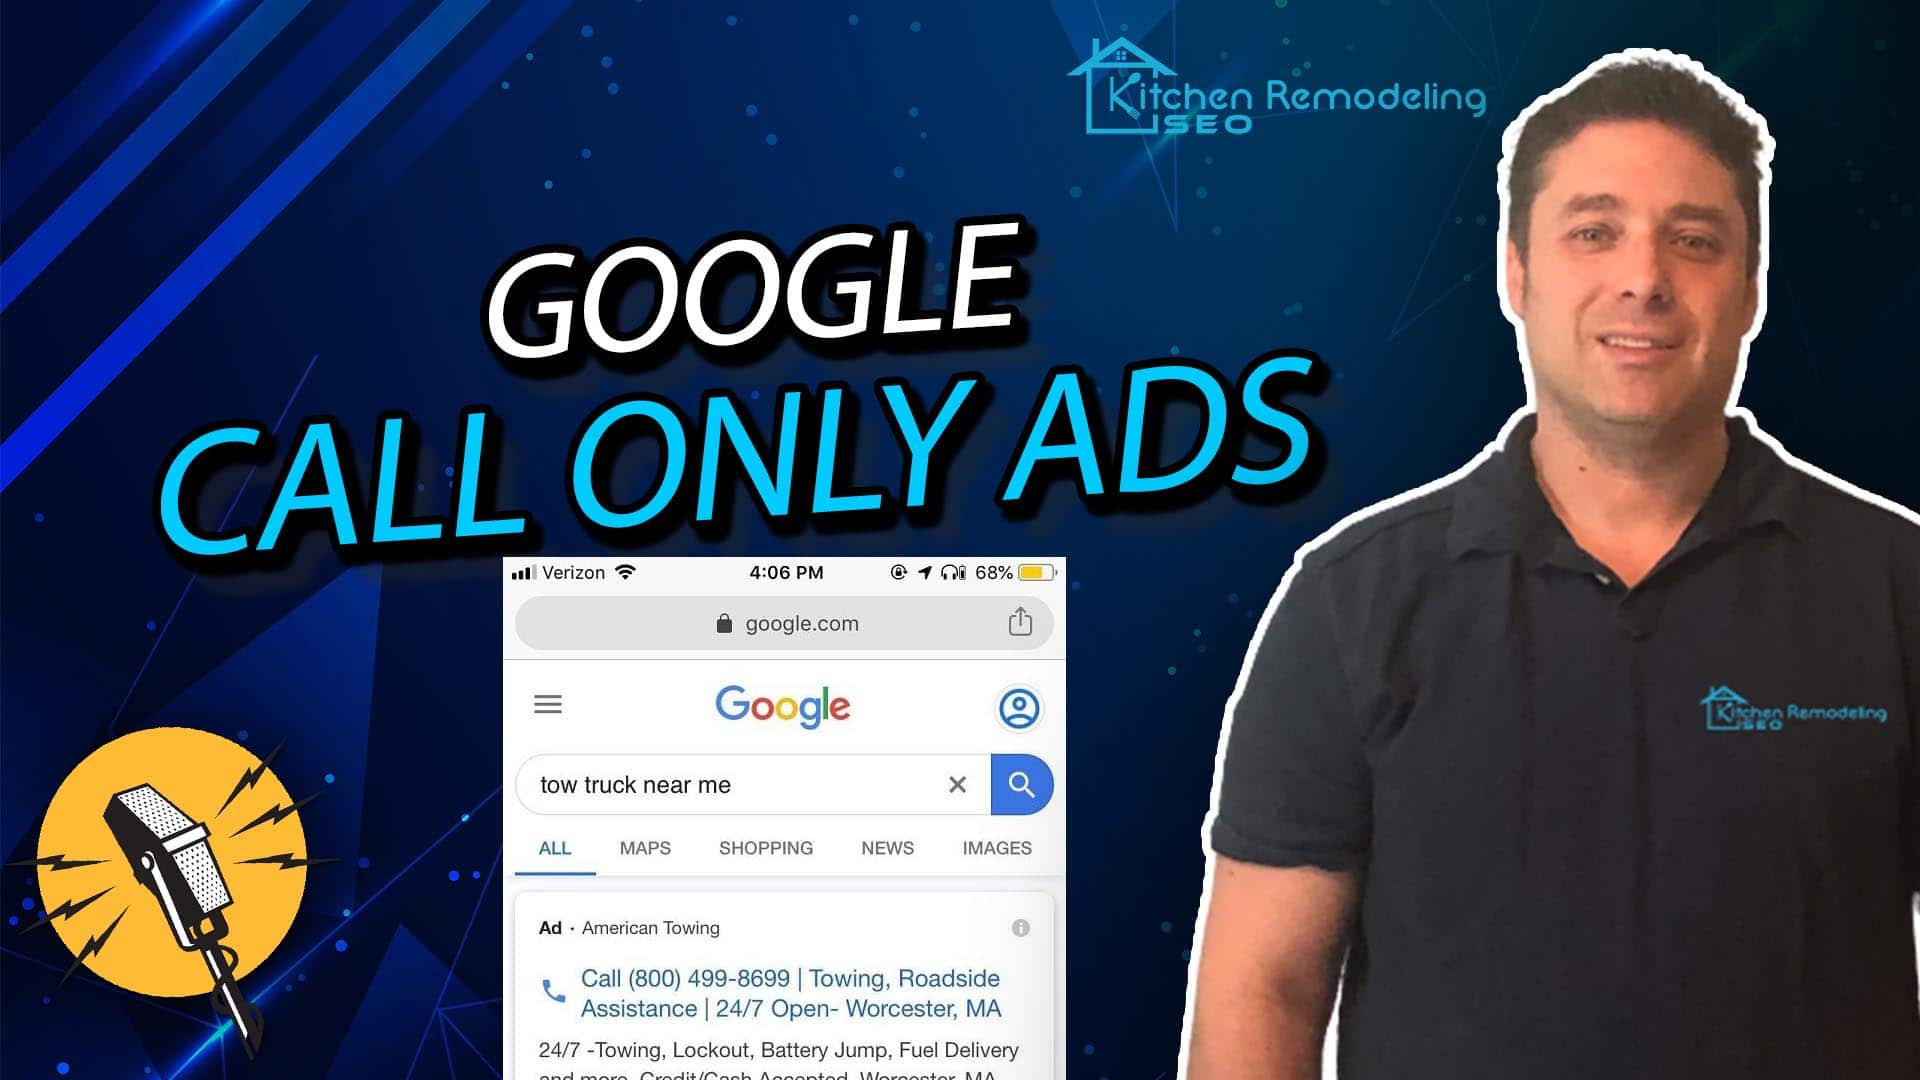 Google call only ads thumnail image